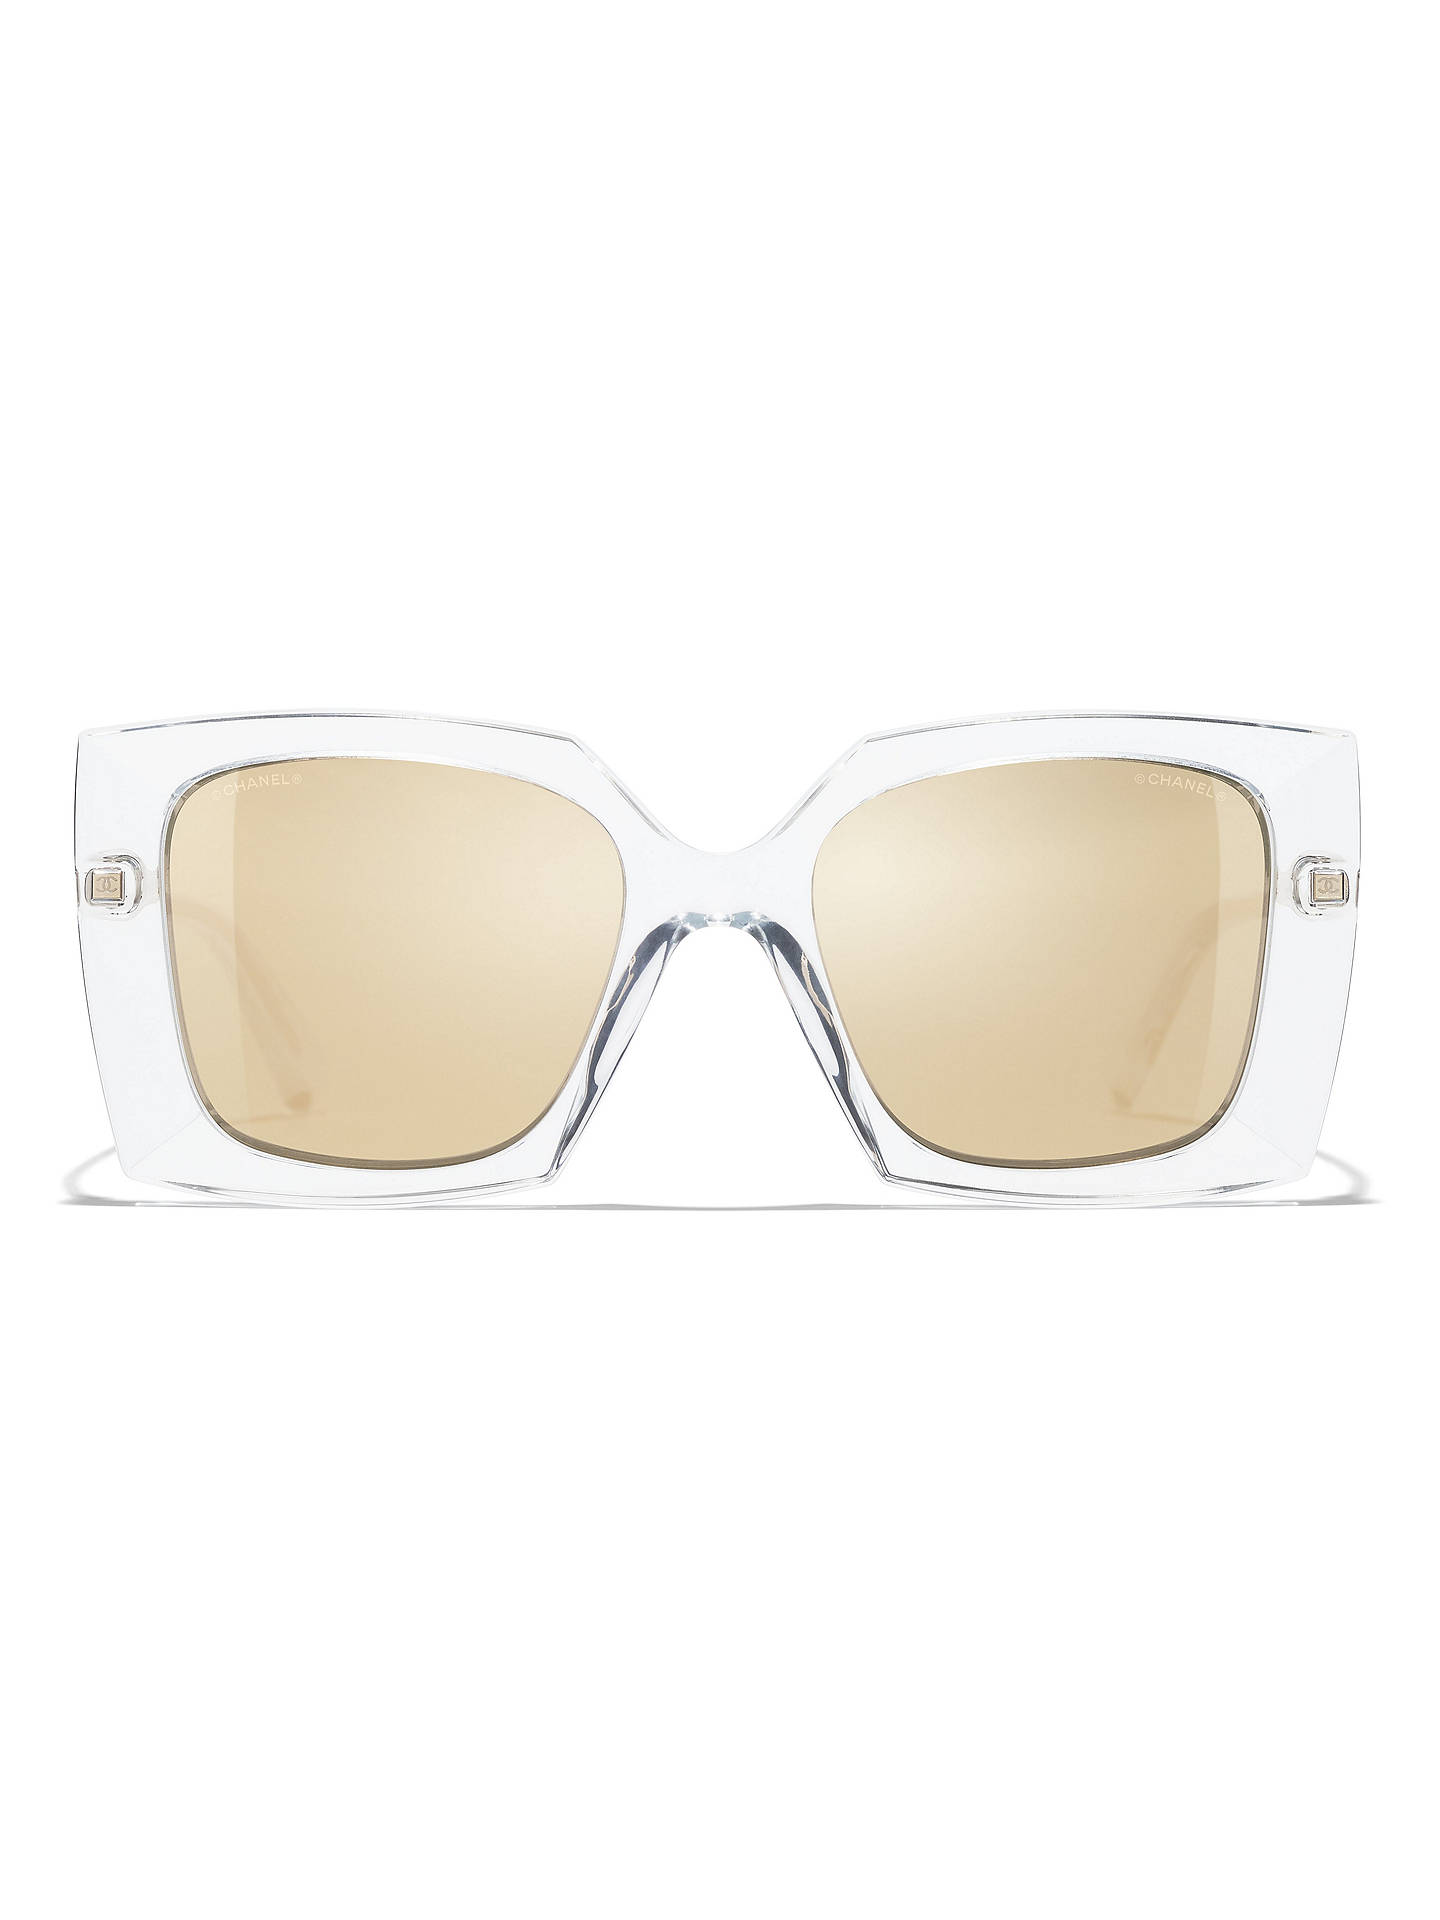 BuyCHANEL Square Sunglasses CH6051 Clear/Mirror Gold Online at johnlewis.com